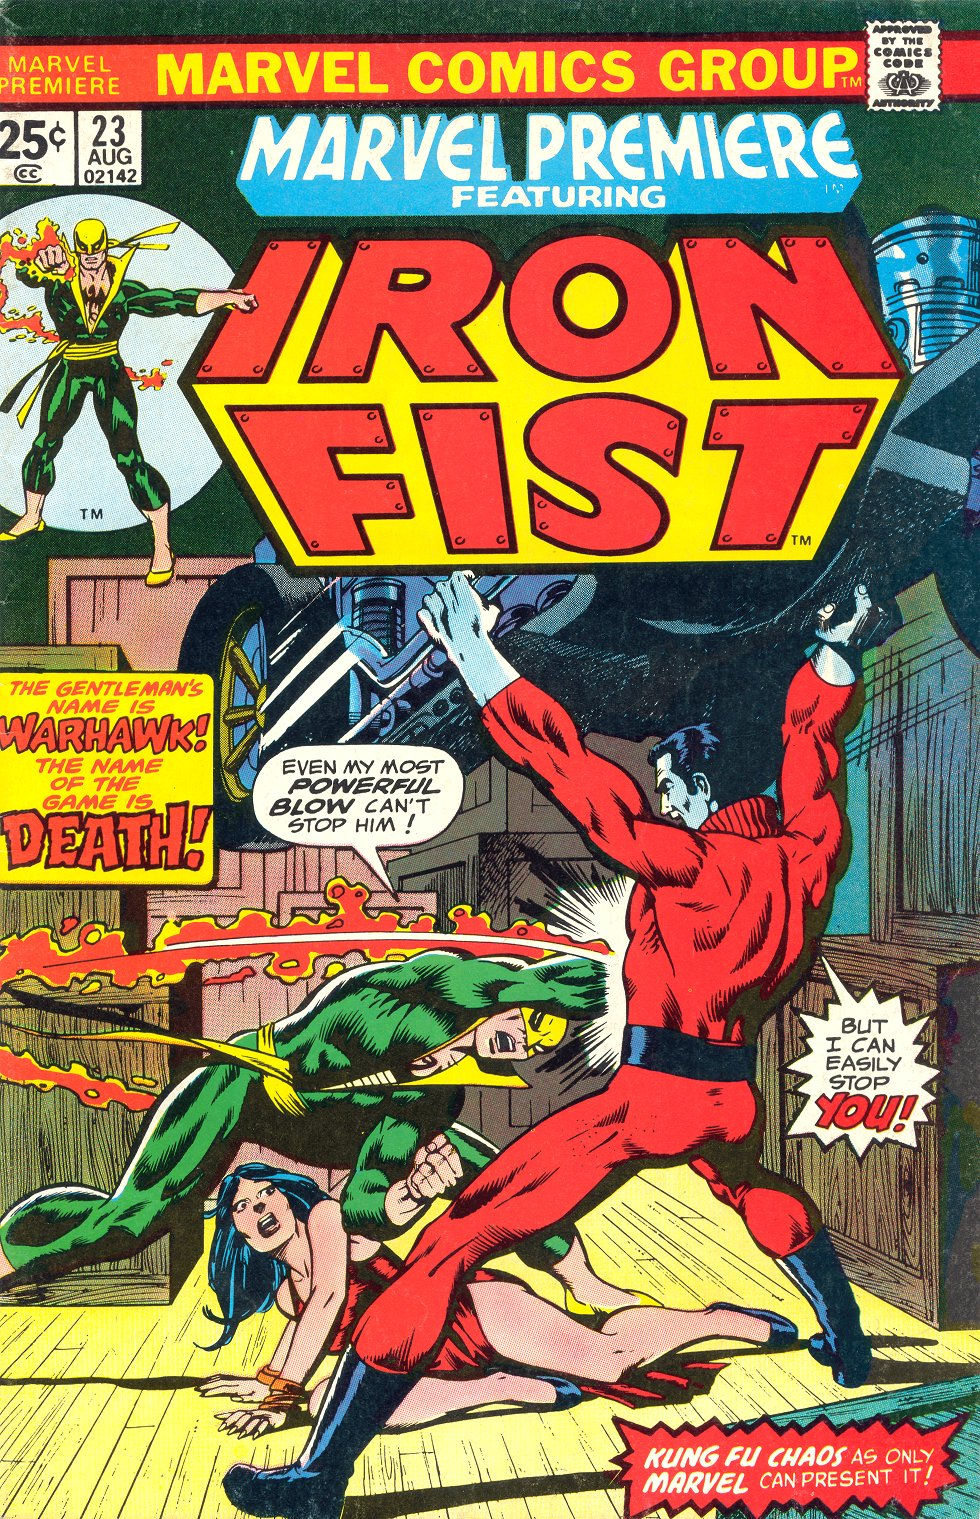 Marvel Premiere (1972) #23, cover penciled by Gil Kane & inked by Bob McLeod.